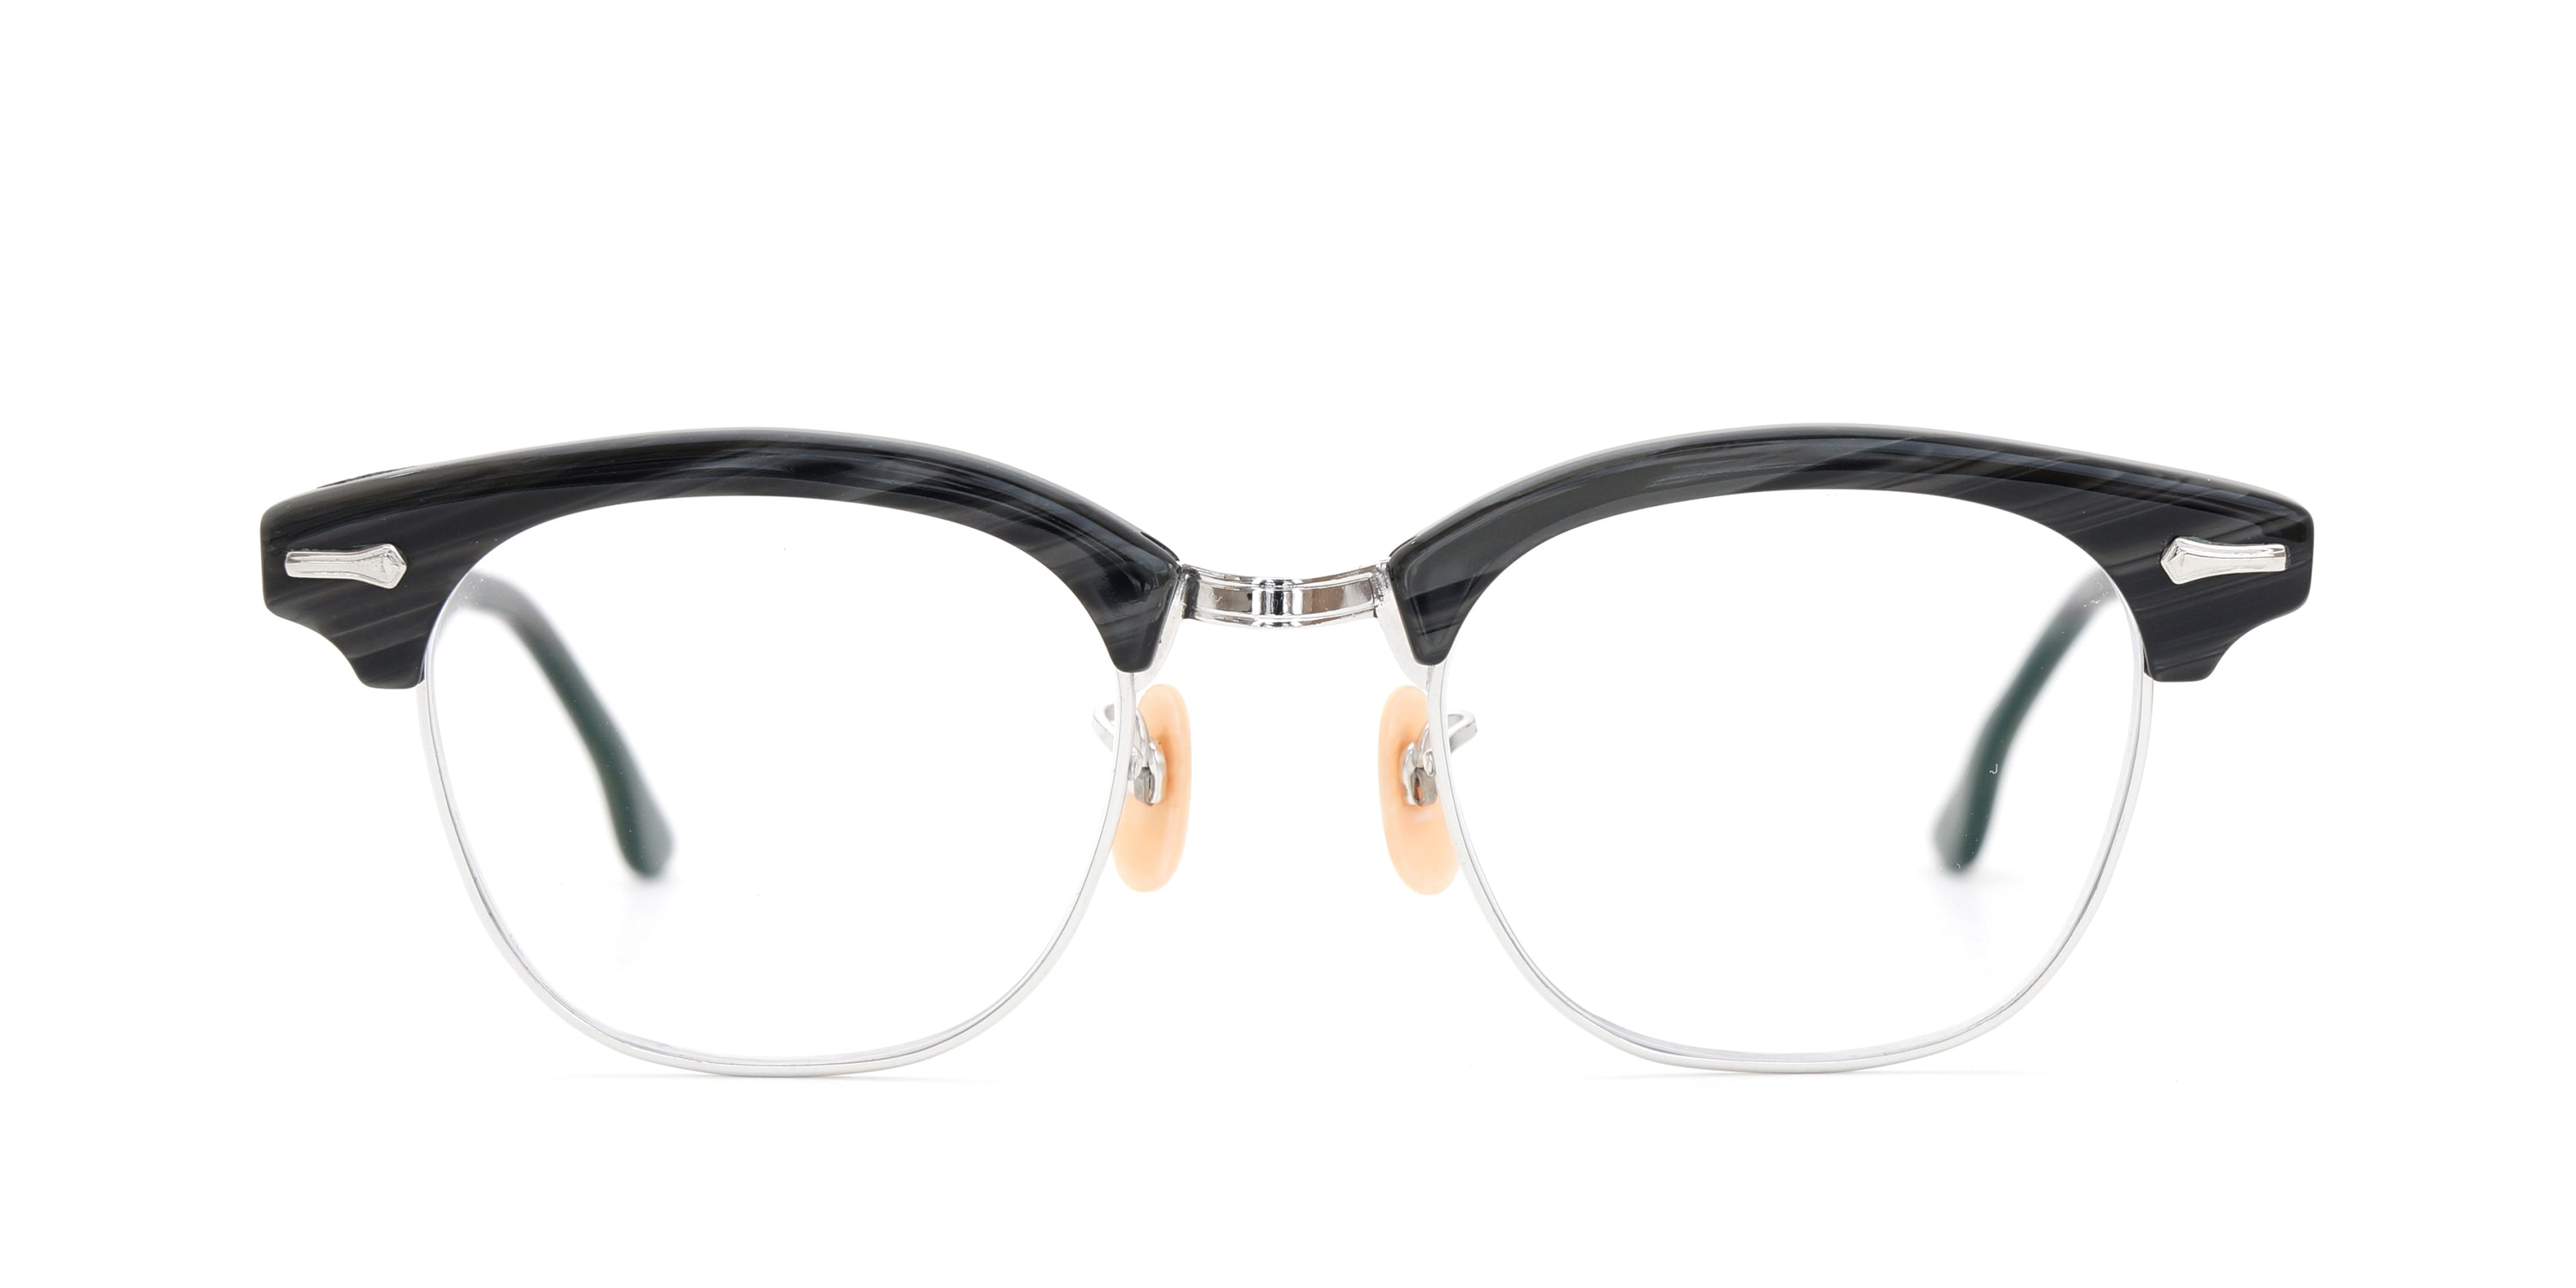 The Spectacle メガネ 1950s-1960s SHURON RONSIR Black-Stone WG 1/10 12KGF 46/20 イメージ2